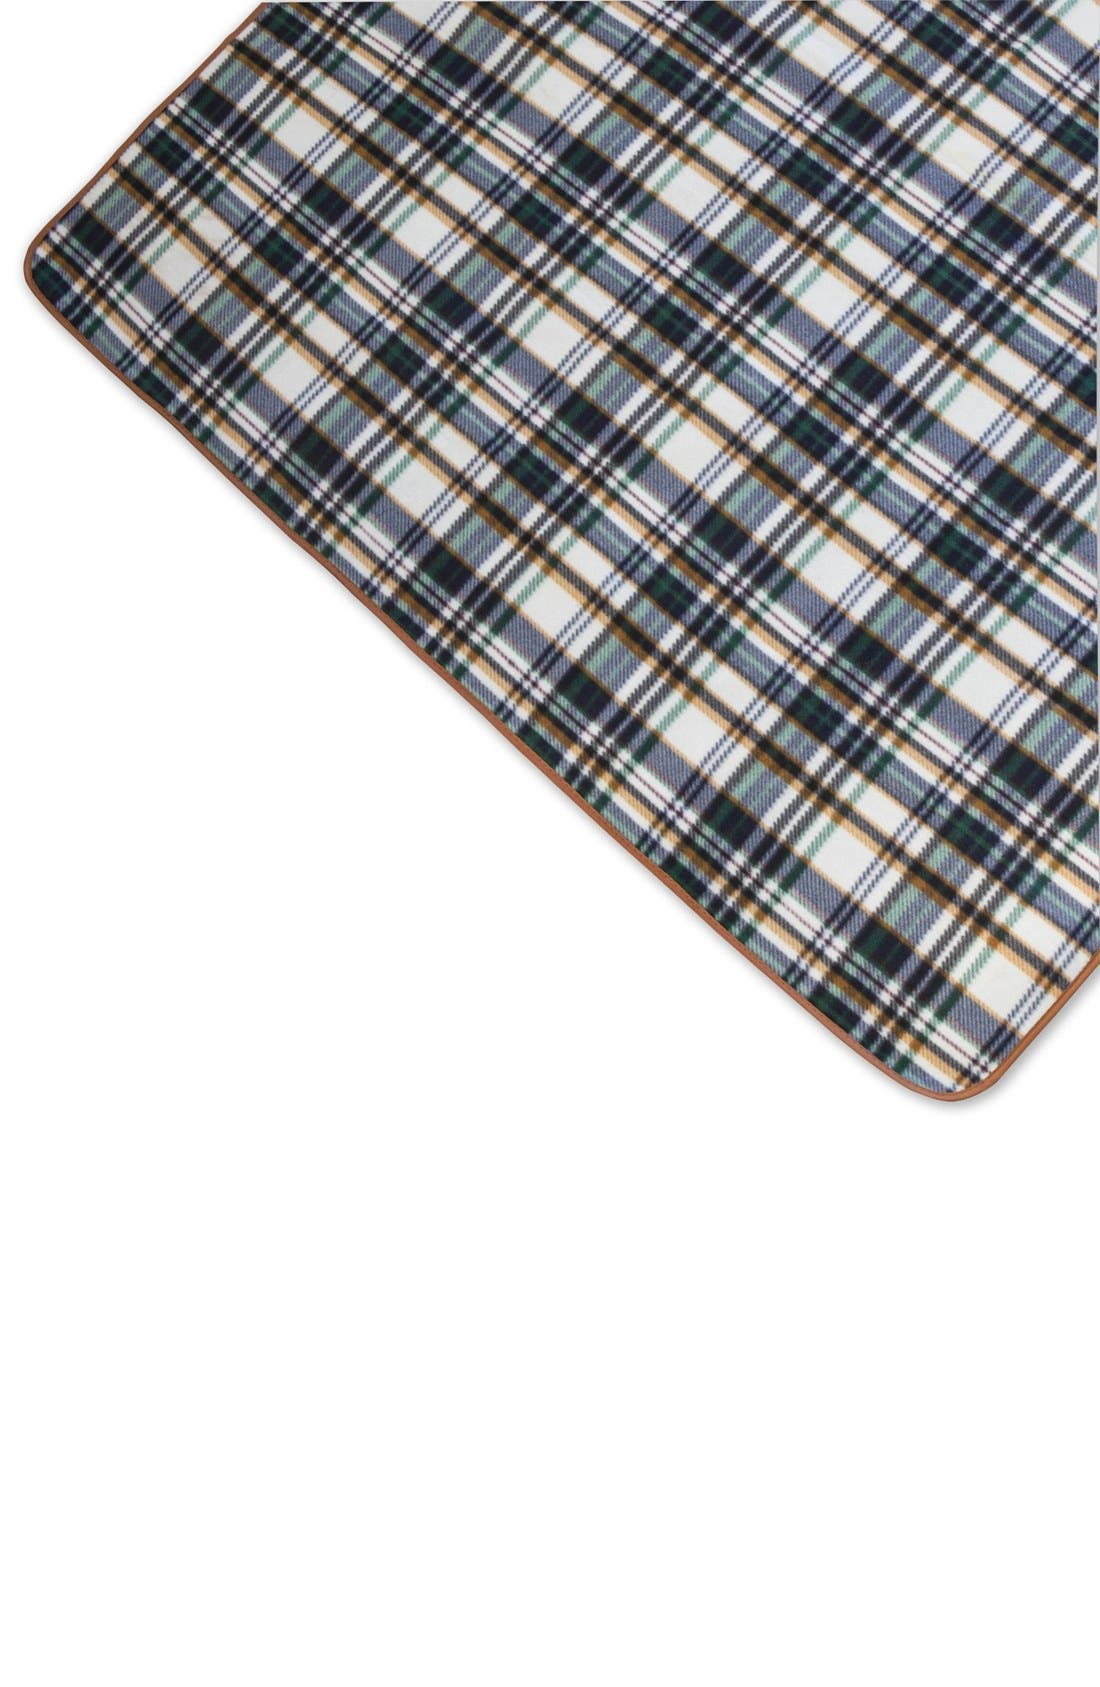 Alternate Image 3  - Picnic Time 'English Plaid XL' Fold-Up Blanket Tote